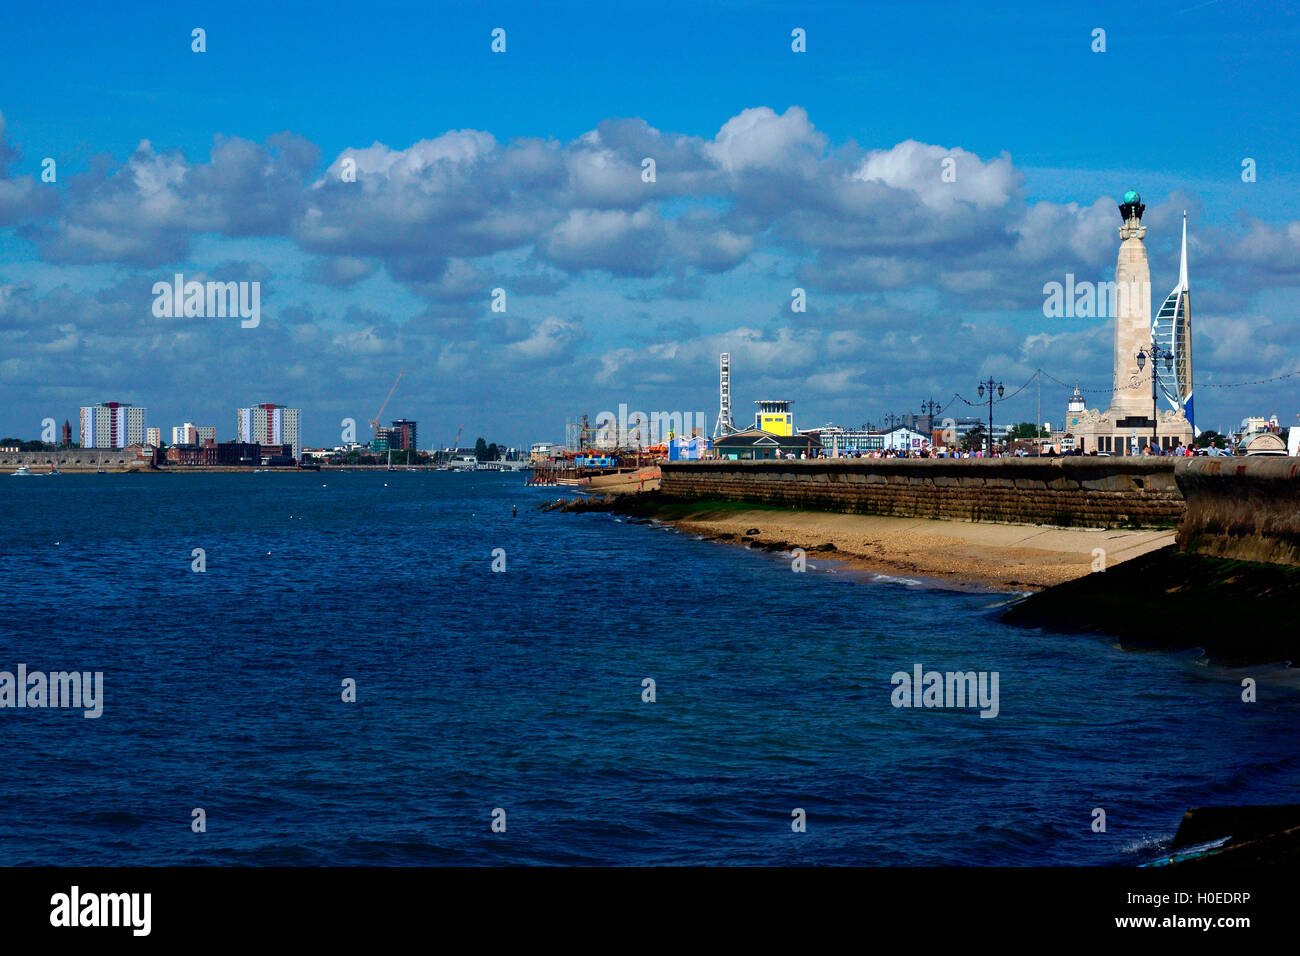 LOOKING WEST TO PORTMOUTH HARBOUR, - Stock Image